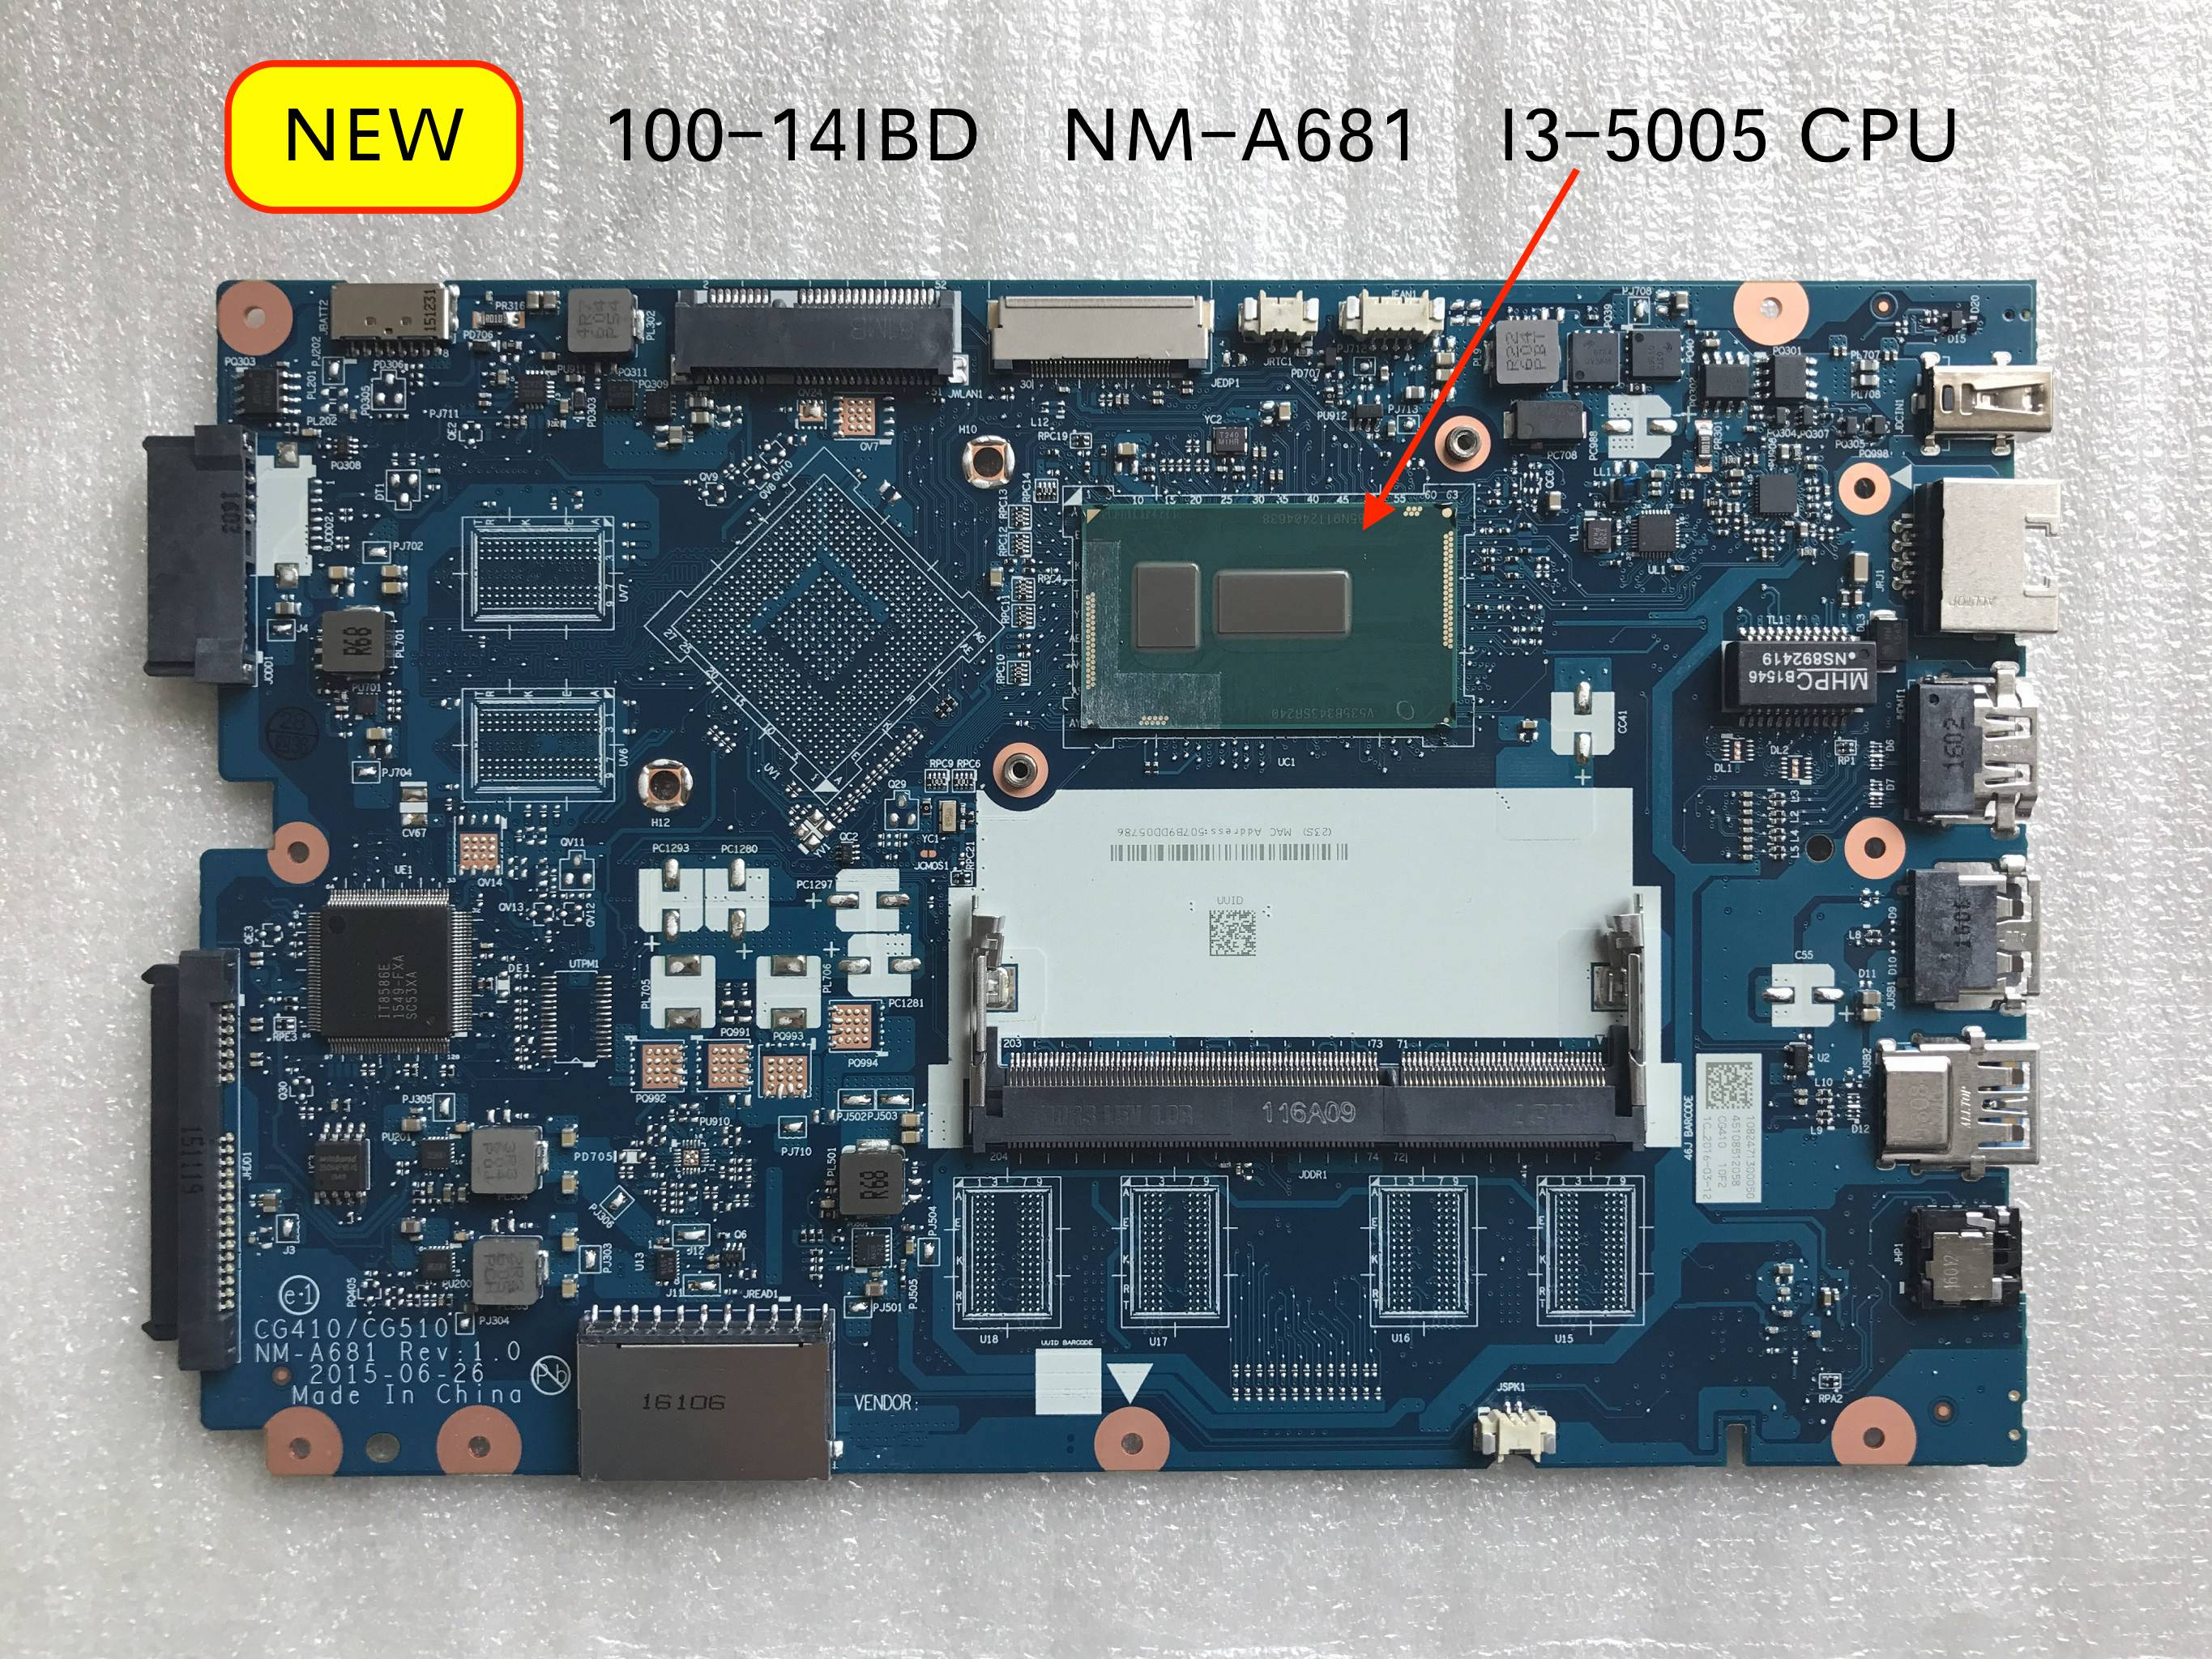 New NM-A681 Mainboard For Lenovo 100-14IBD Laptop PC Motherboard I3-5005U